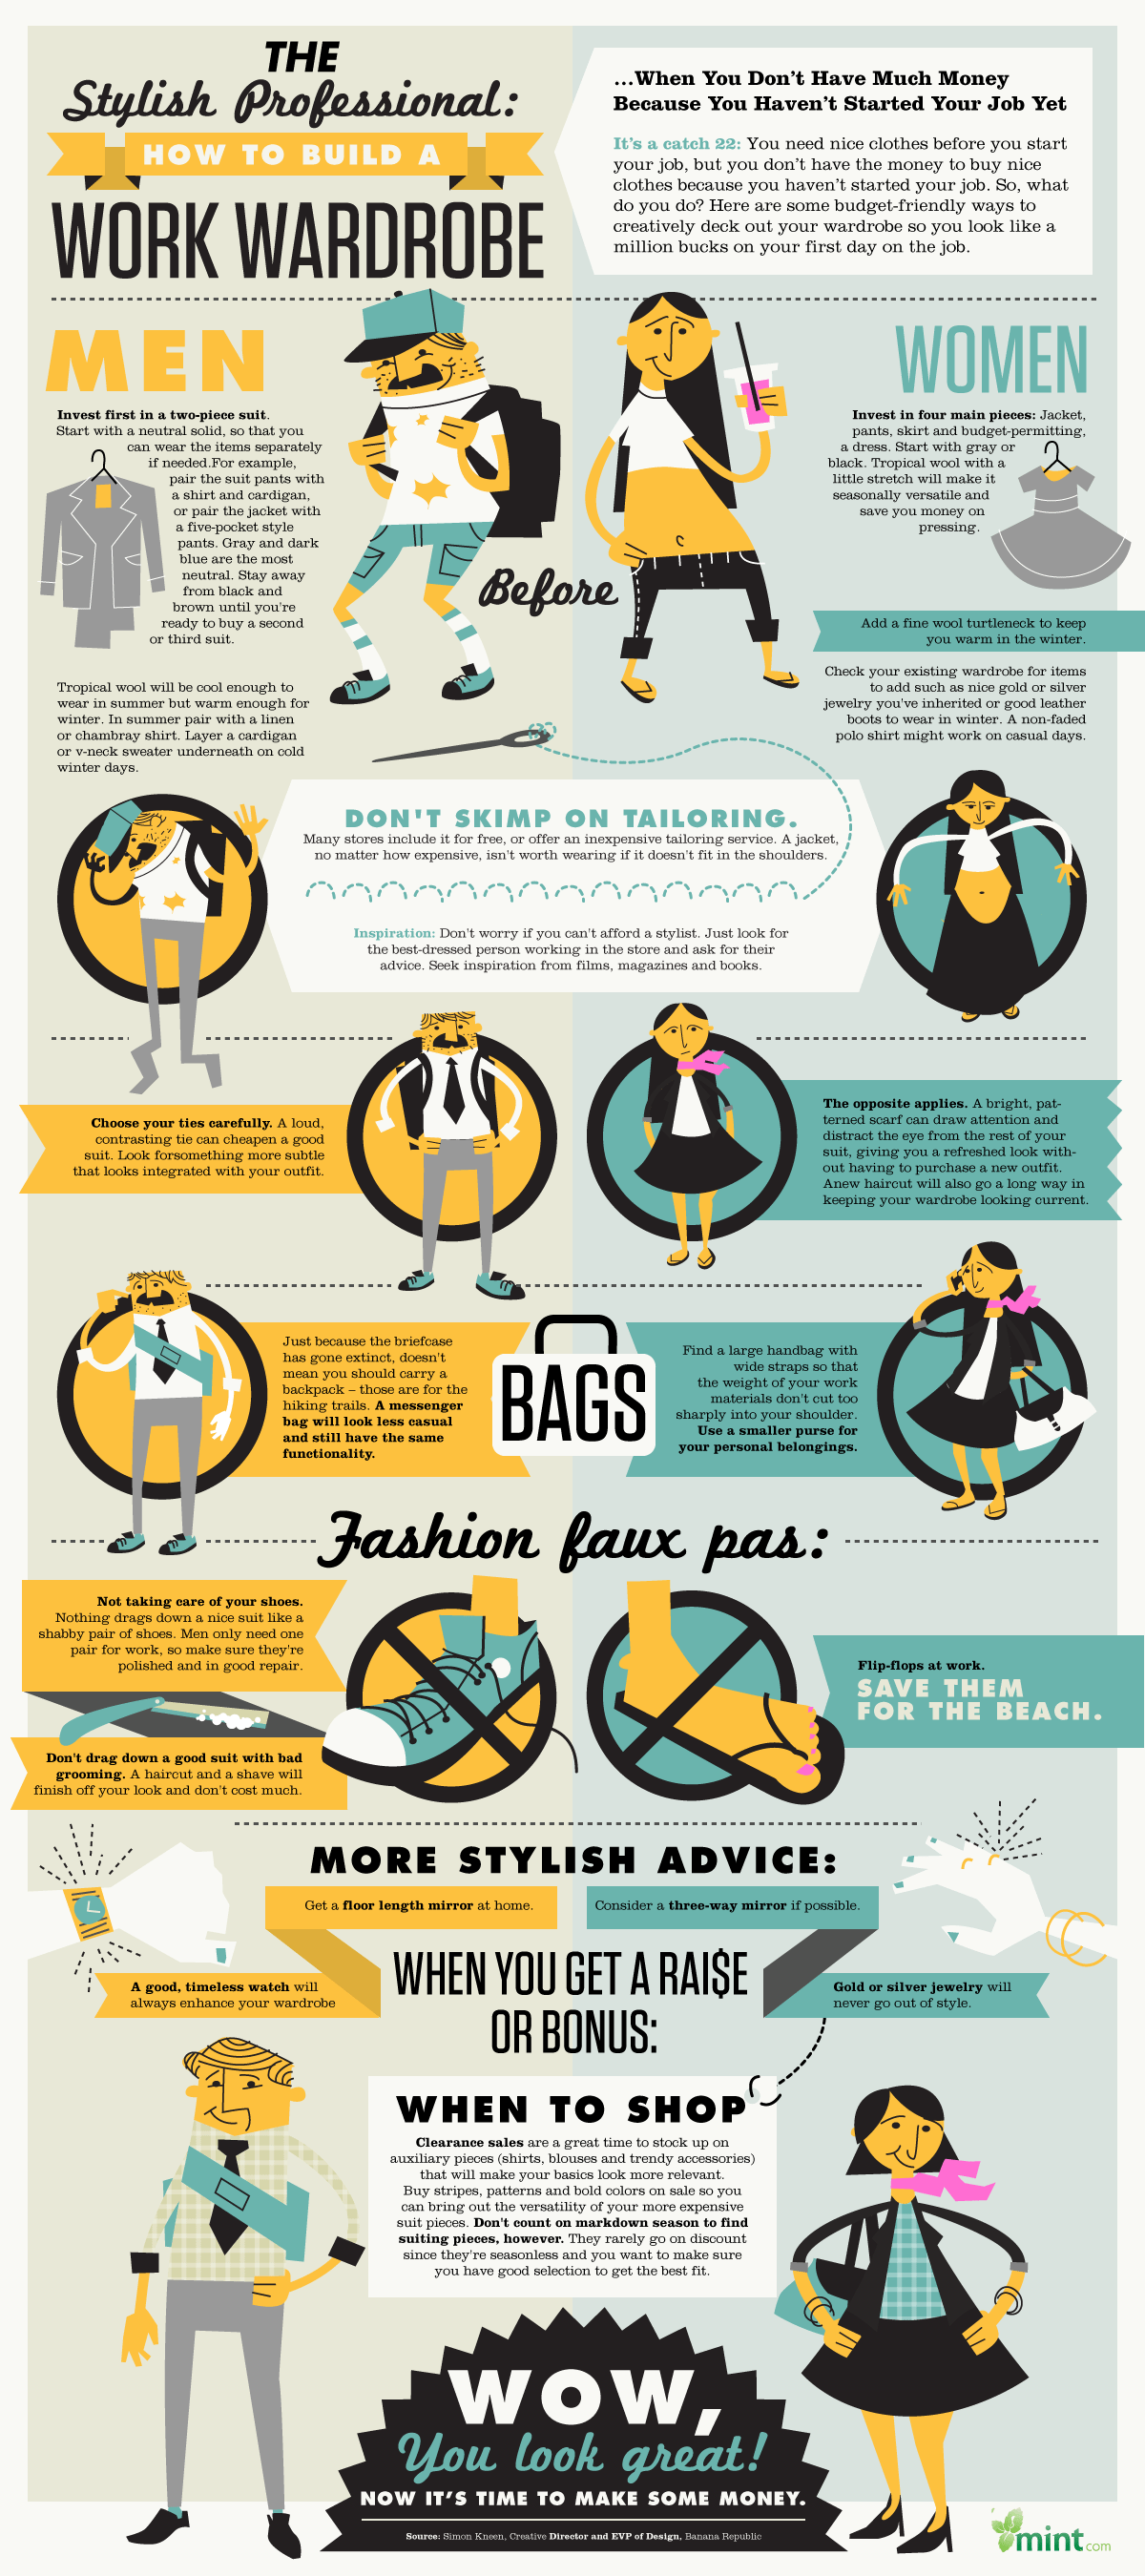 The Stylish Professional [infographic] 1